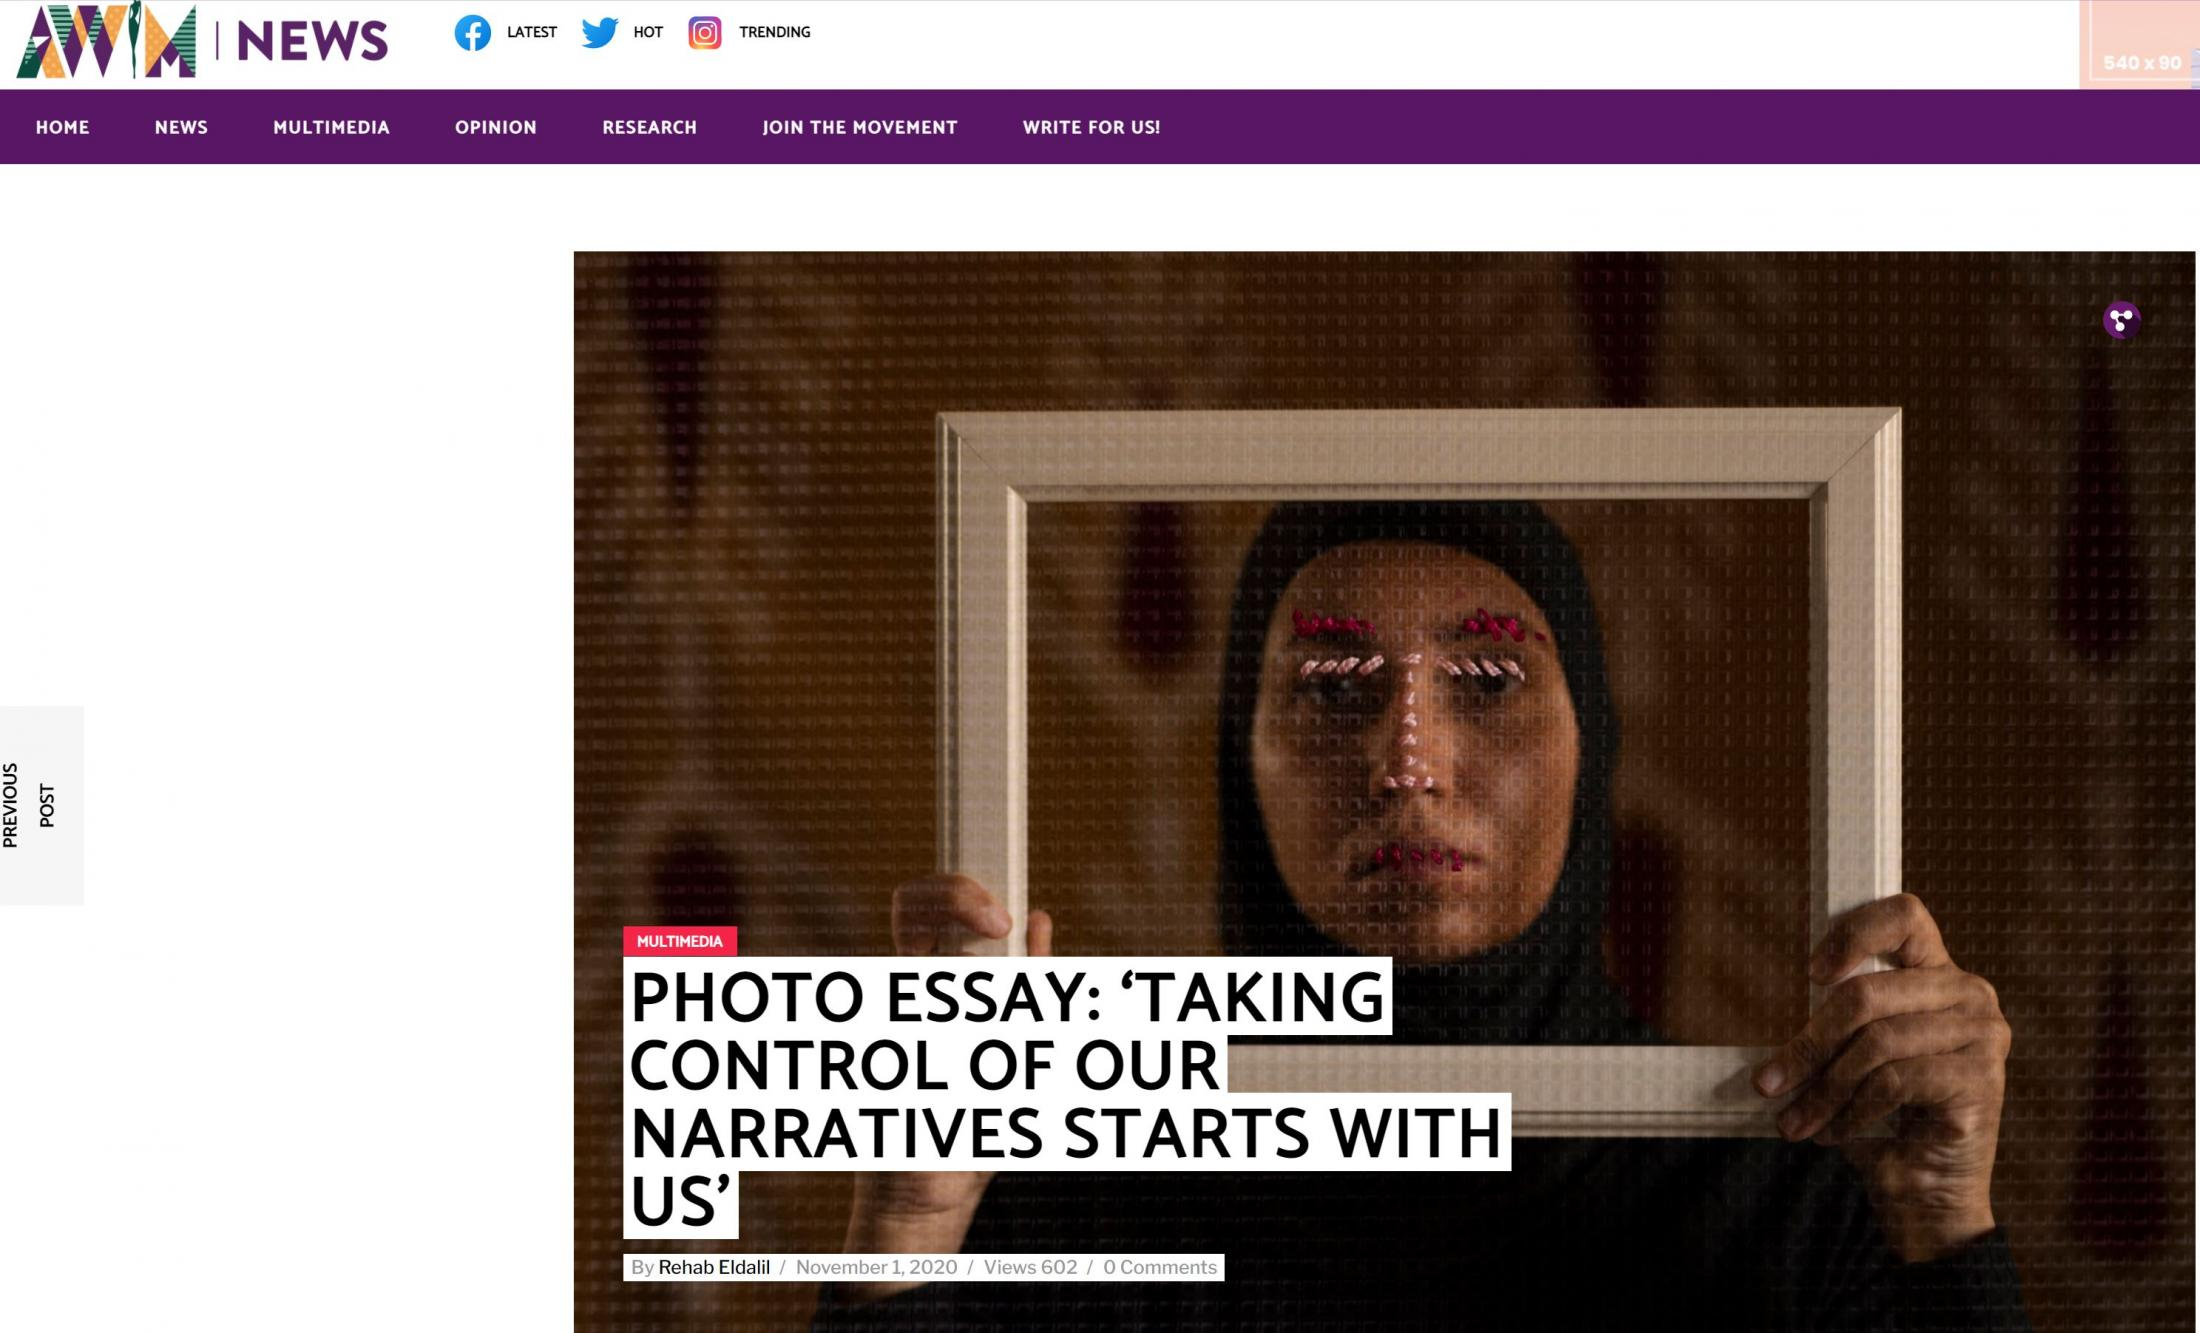 African Women In Media, Photo essay digital publication, 2020 https://africanwomeninmedia.com/photo-essay-taking-control-of-our-narratives-starts-with-us-a-personal-reflection-on-representation/